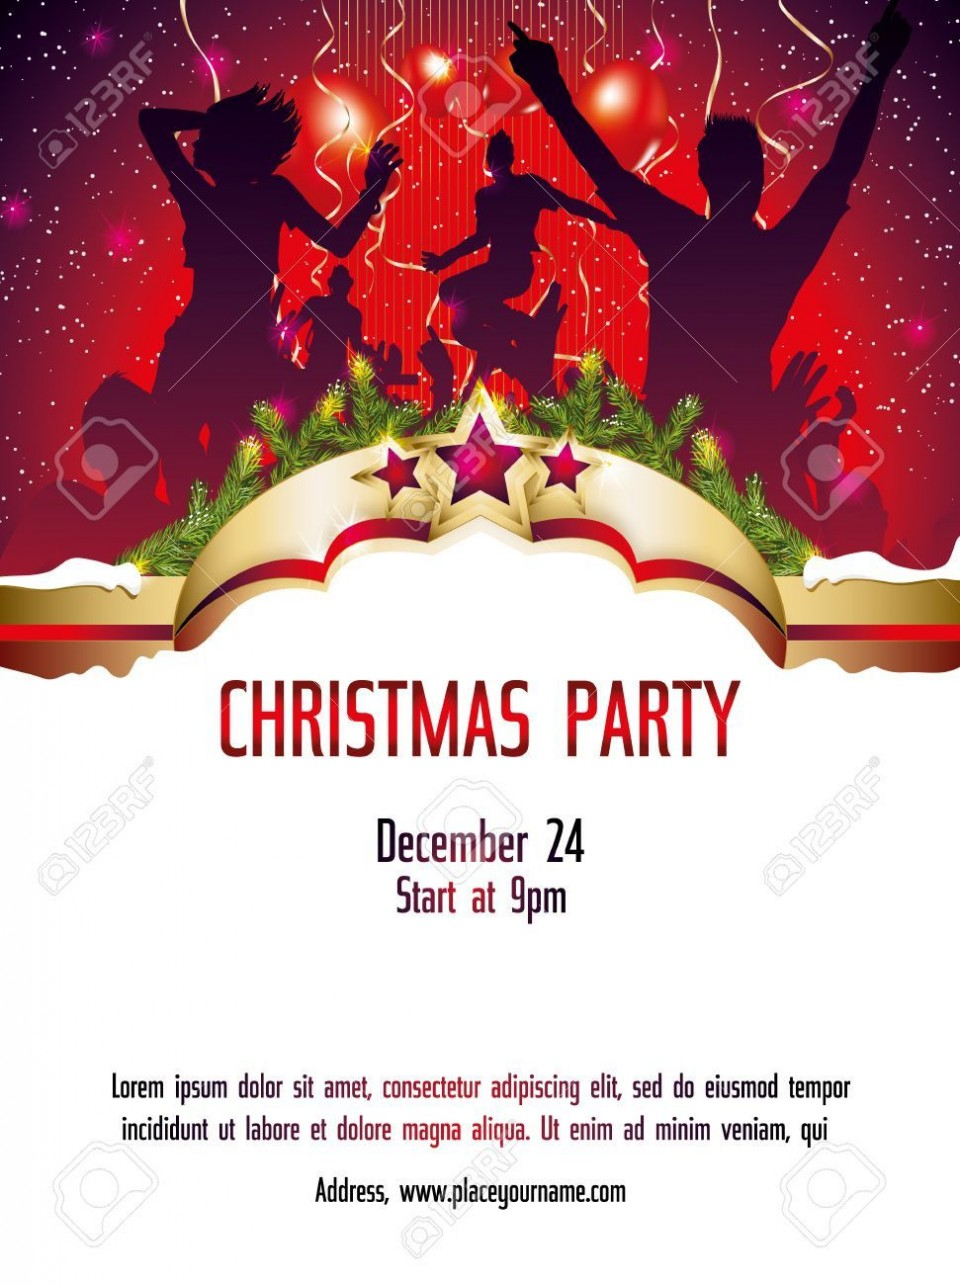 002 Shocking Christma Party Invitation Template High Definition  Funny Free Download Word Card960